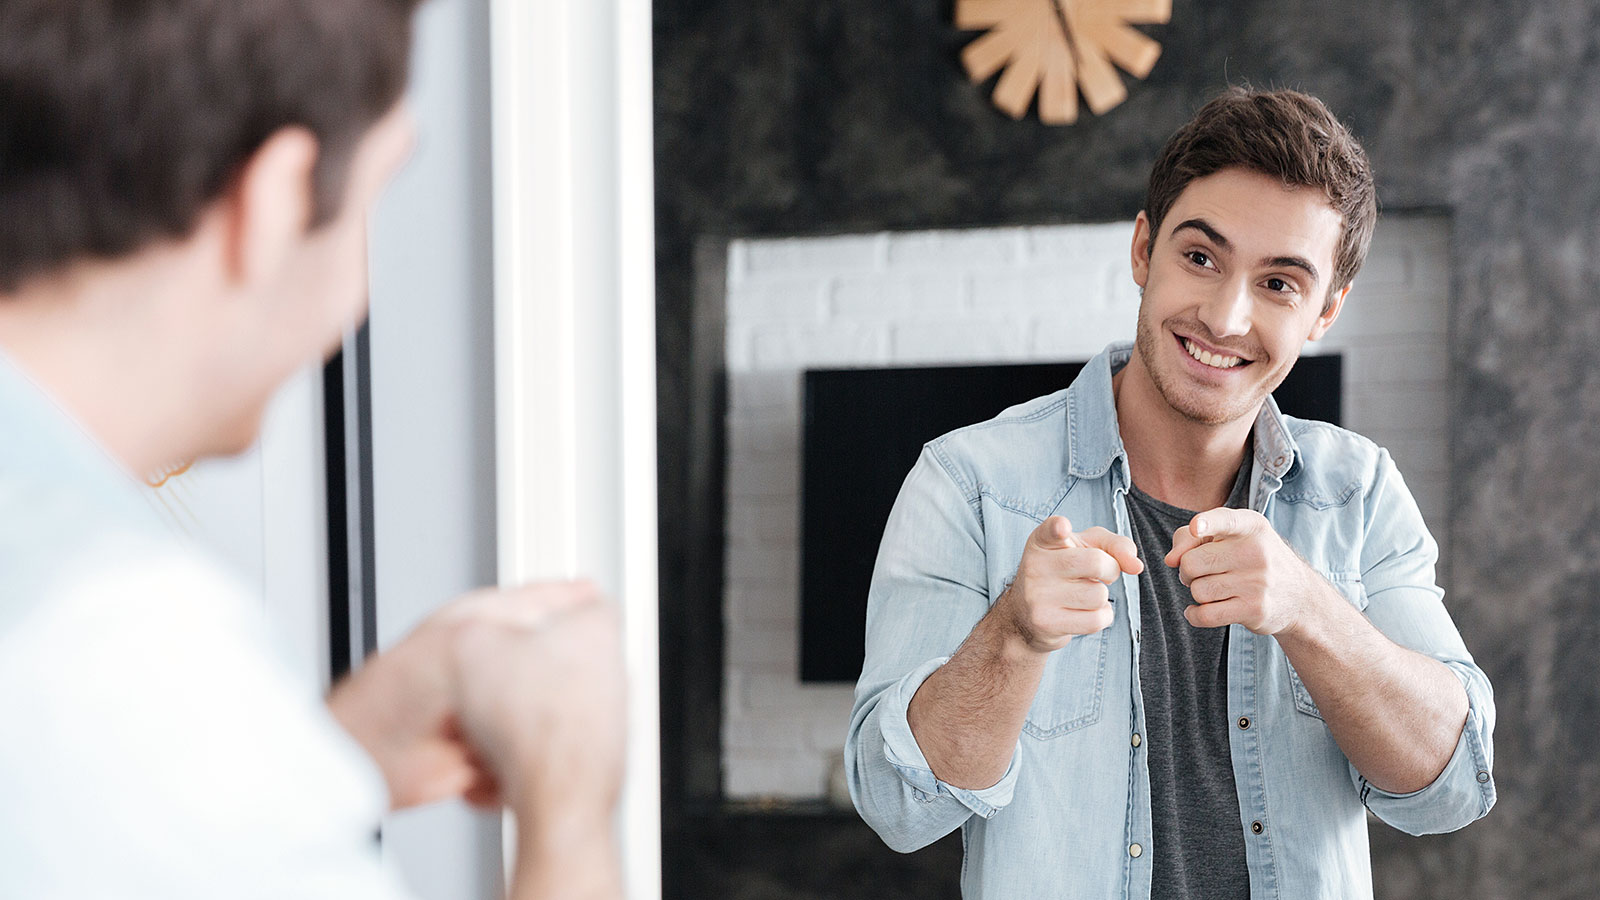 You should refer to yourself in the third person a whole lot more, according to this study